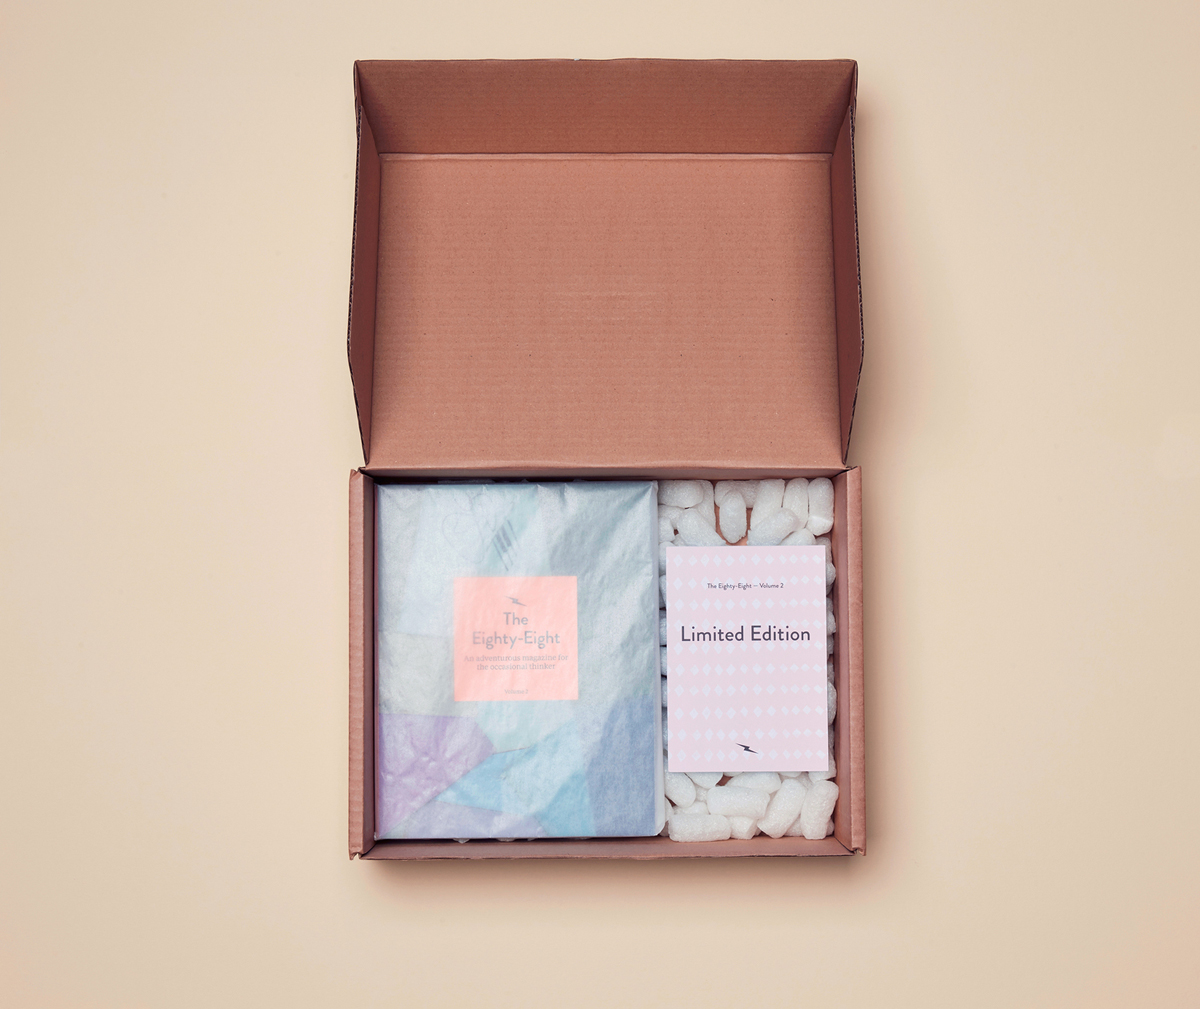 Limited edition box set produced for issue two